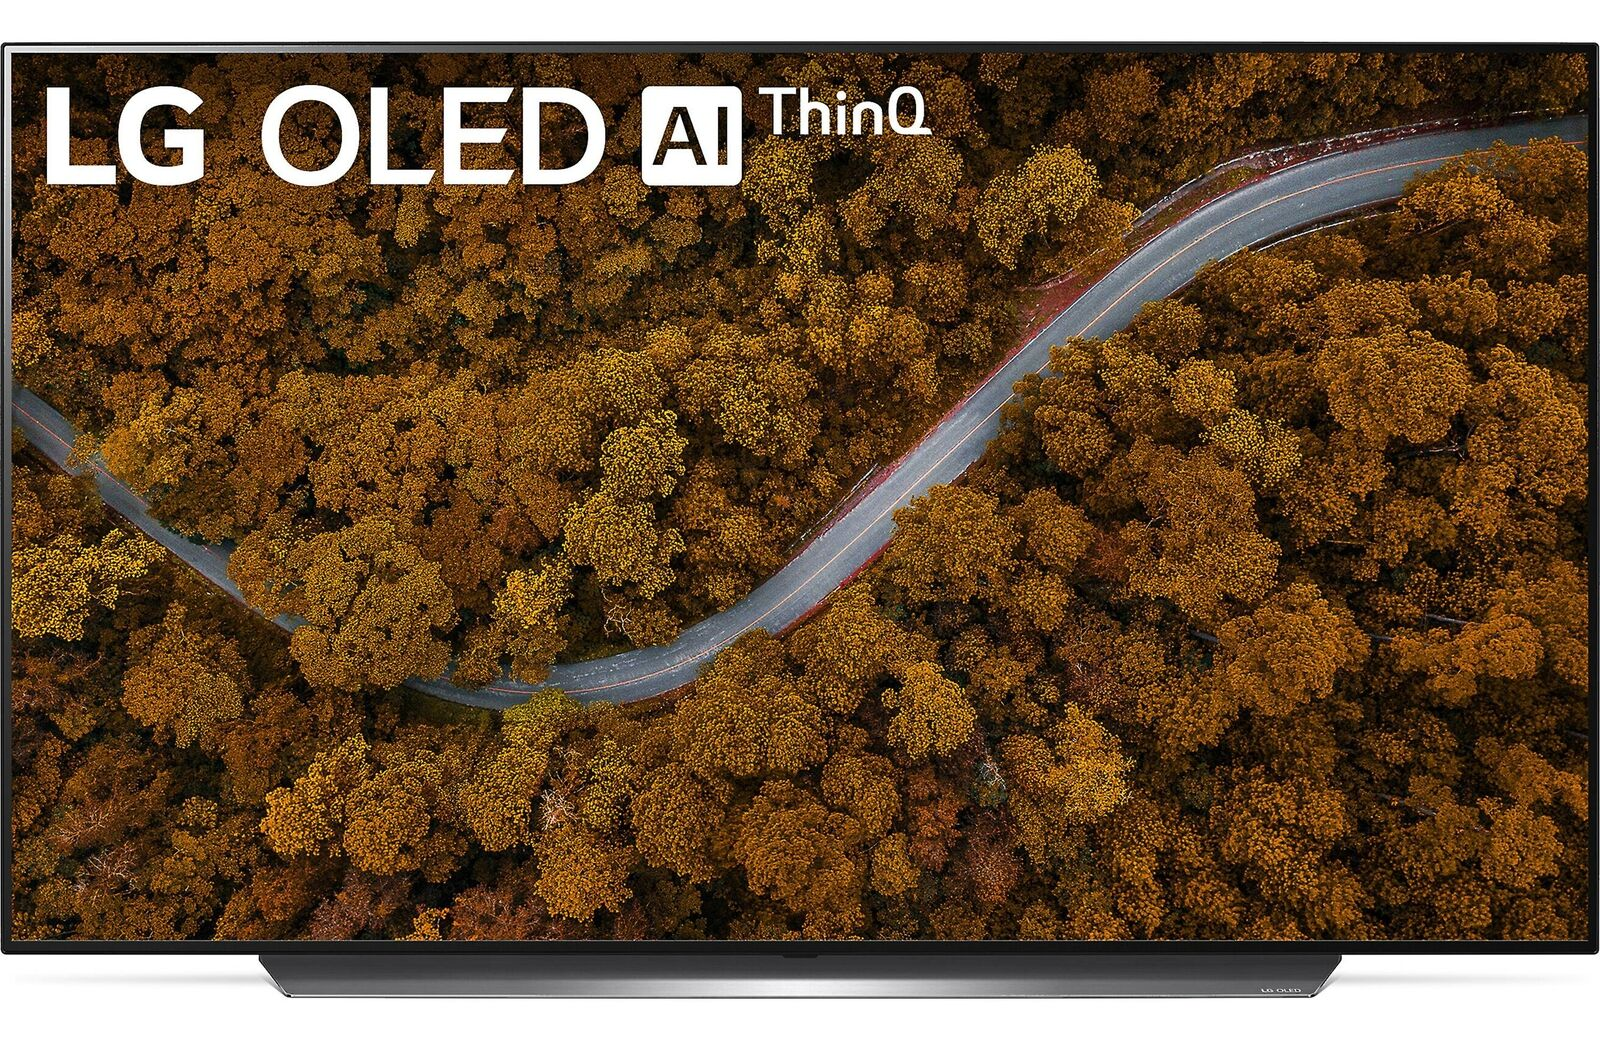 LG CX 55 4K Smart OLED TV with Google Assistant & Alexa Built-in - 2020 Model. Available Now for 1396.99